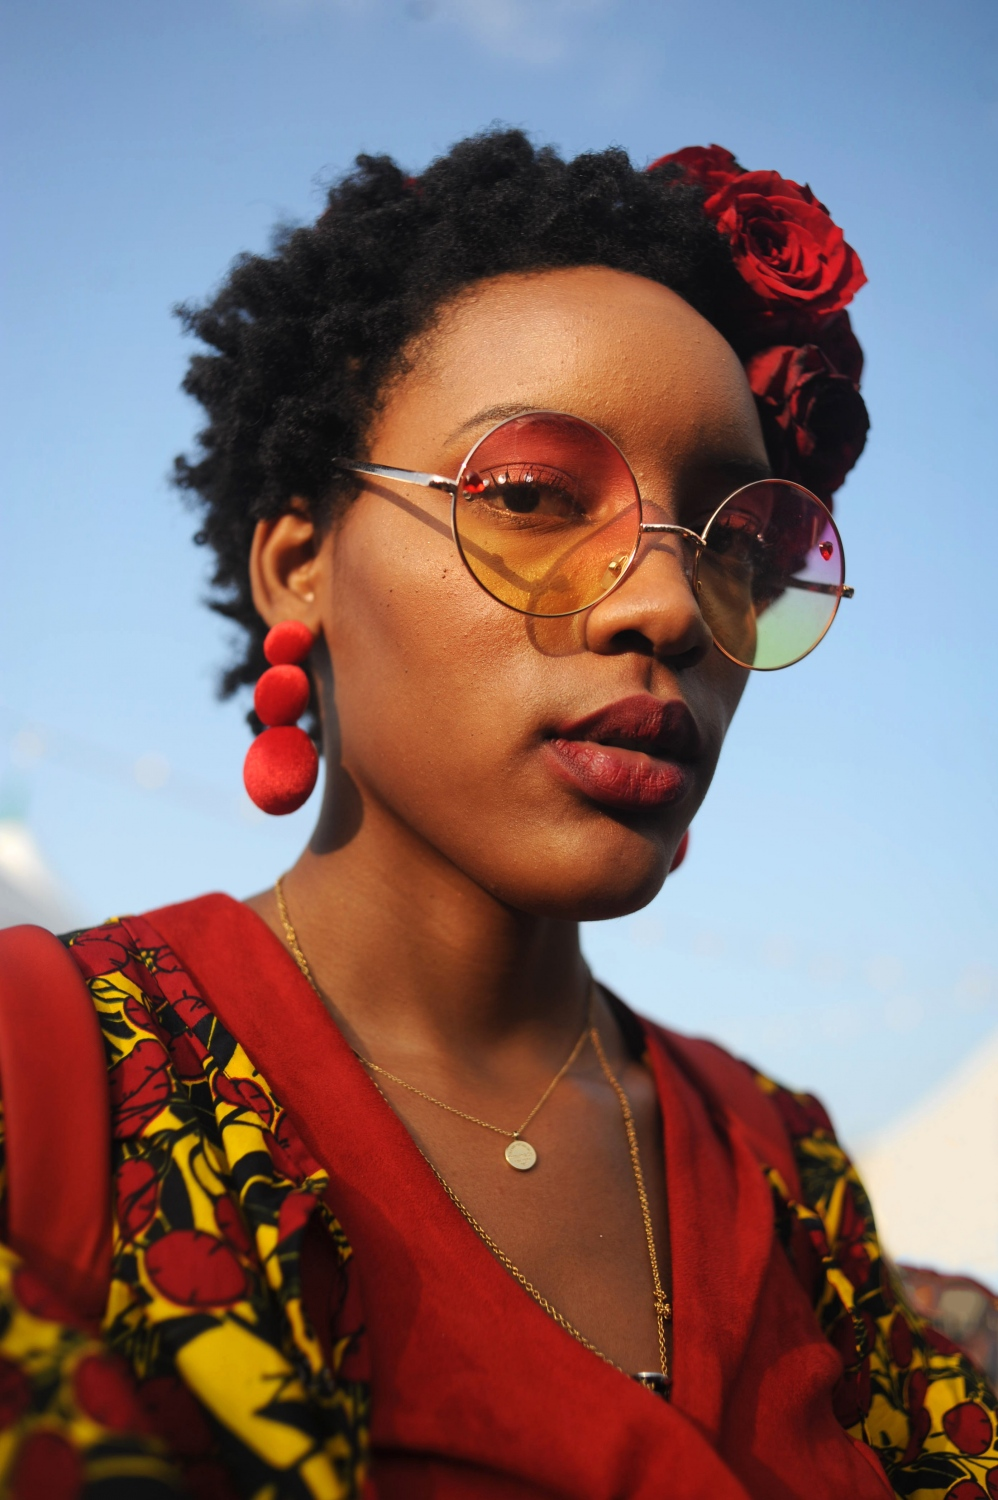 """""""I love Afropunk. I went in Paris and London last year, and now I'm back in the States so I'm going to do it again. It's for us and by us. It's a forum to have our own space and to be able to exist. To be our most creative and open selves and everyone is accepted. It's a safe space. Afropunk is for me. """" Elyse Hines, 21 from St. Louis, Missouri"""